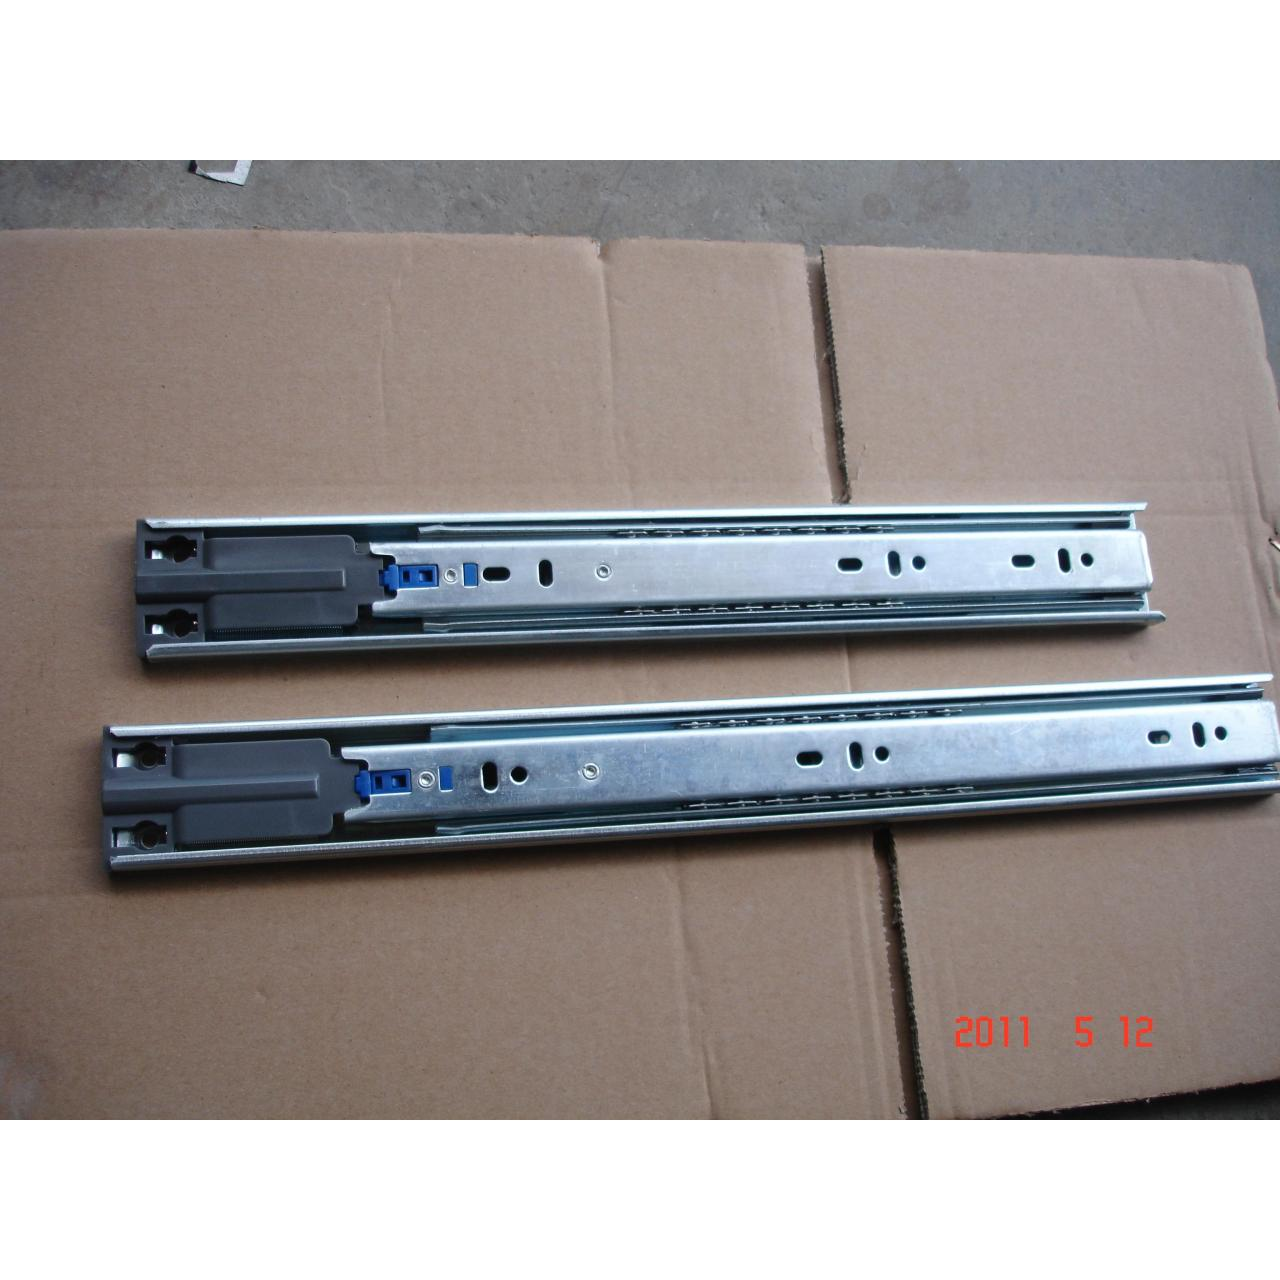 solf-locking drawer slide